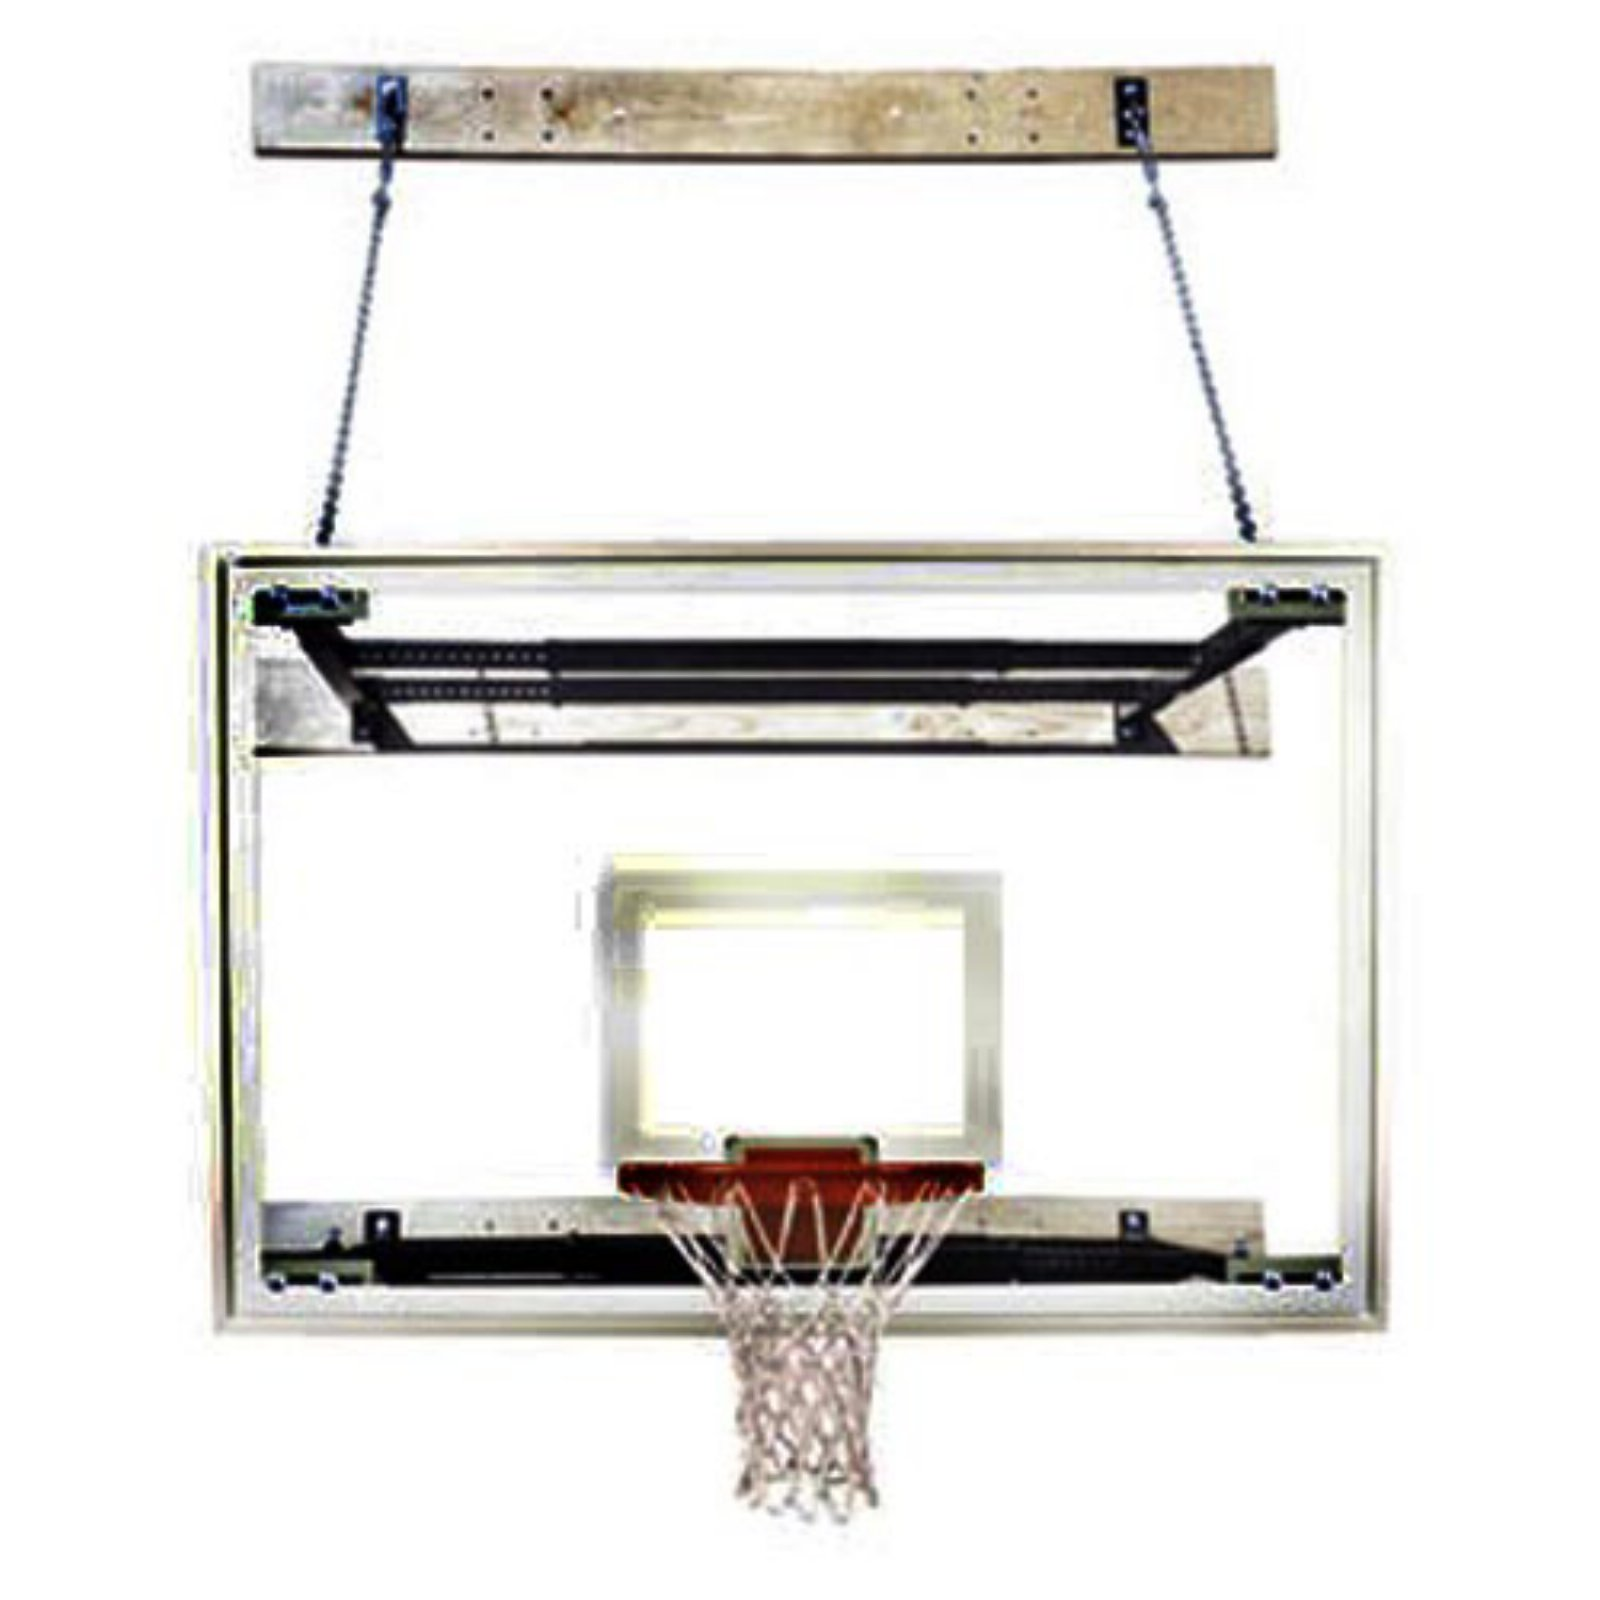 First Team Supermount Tradition Wallmount Basketball System